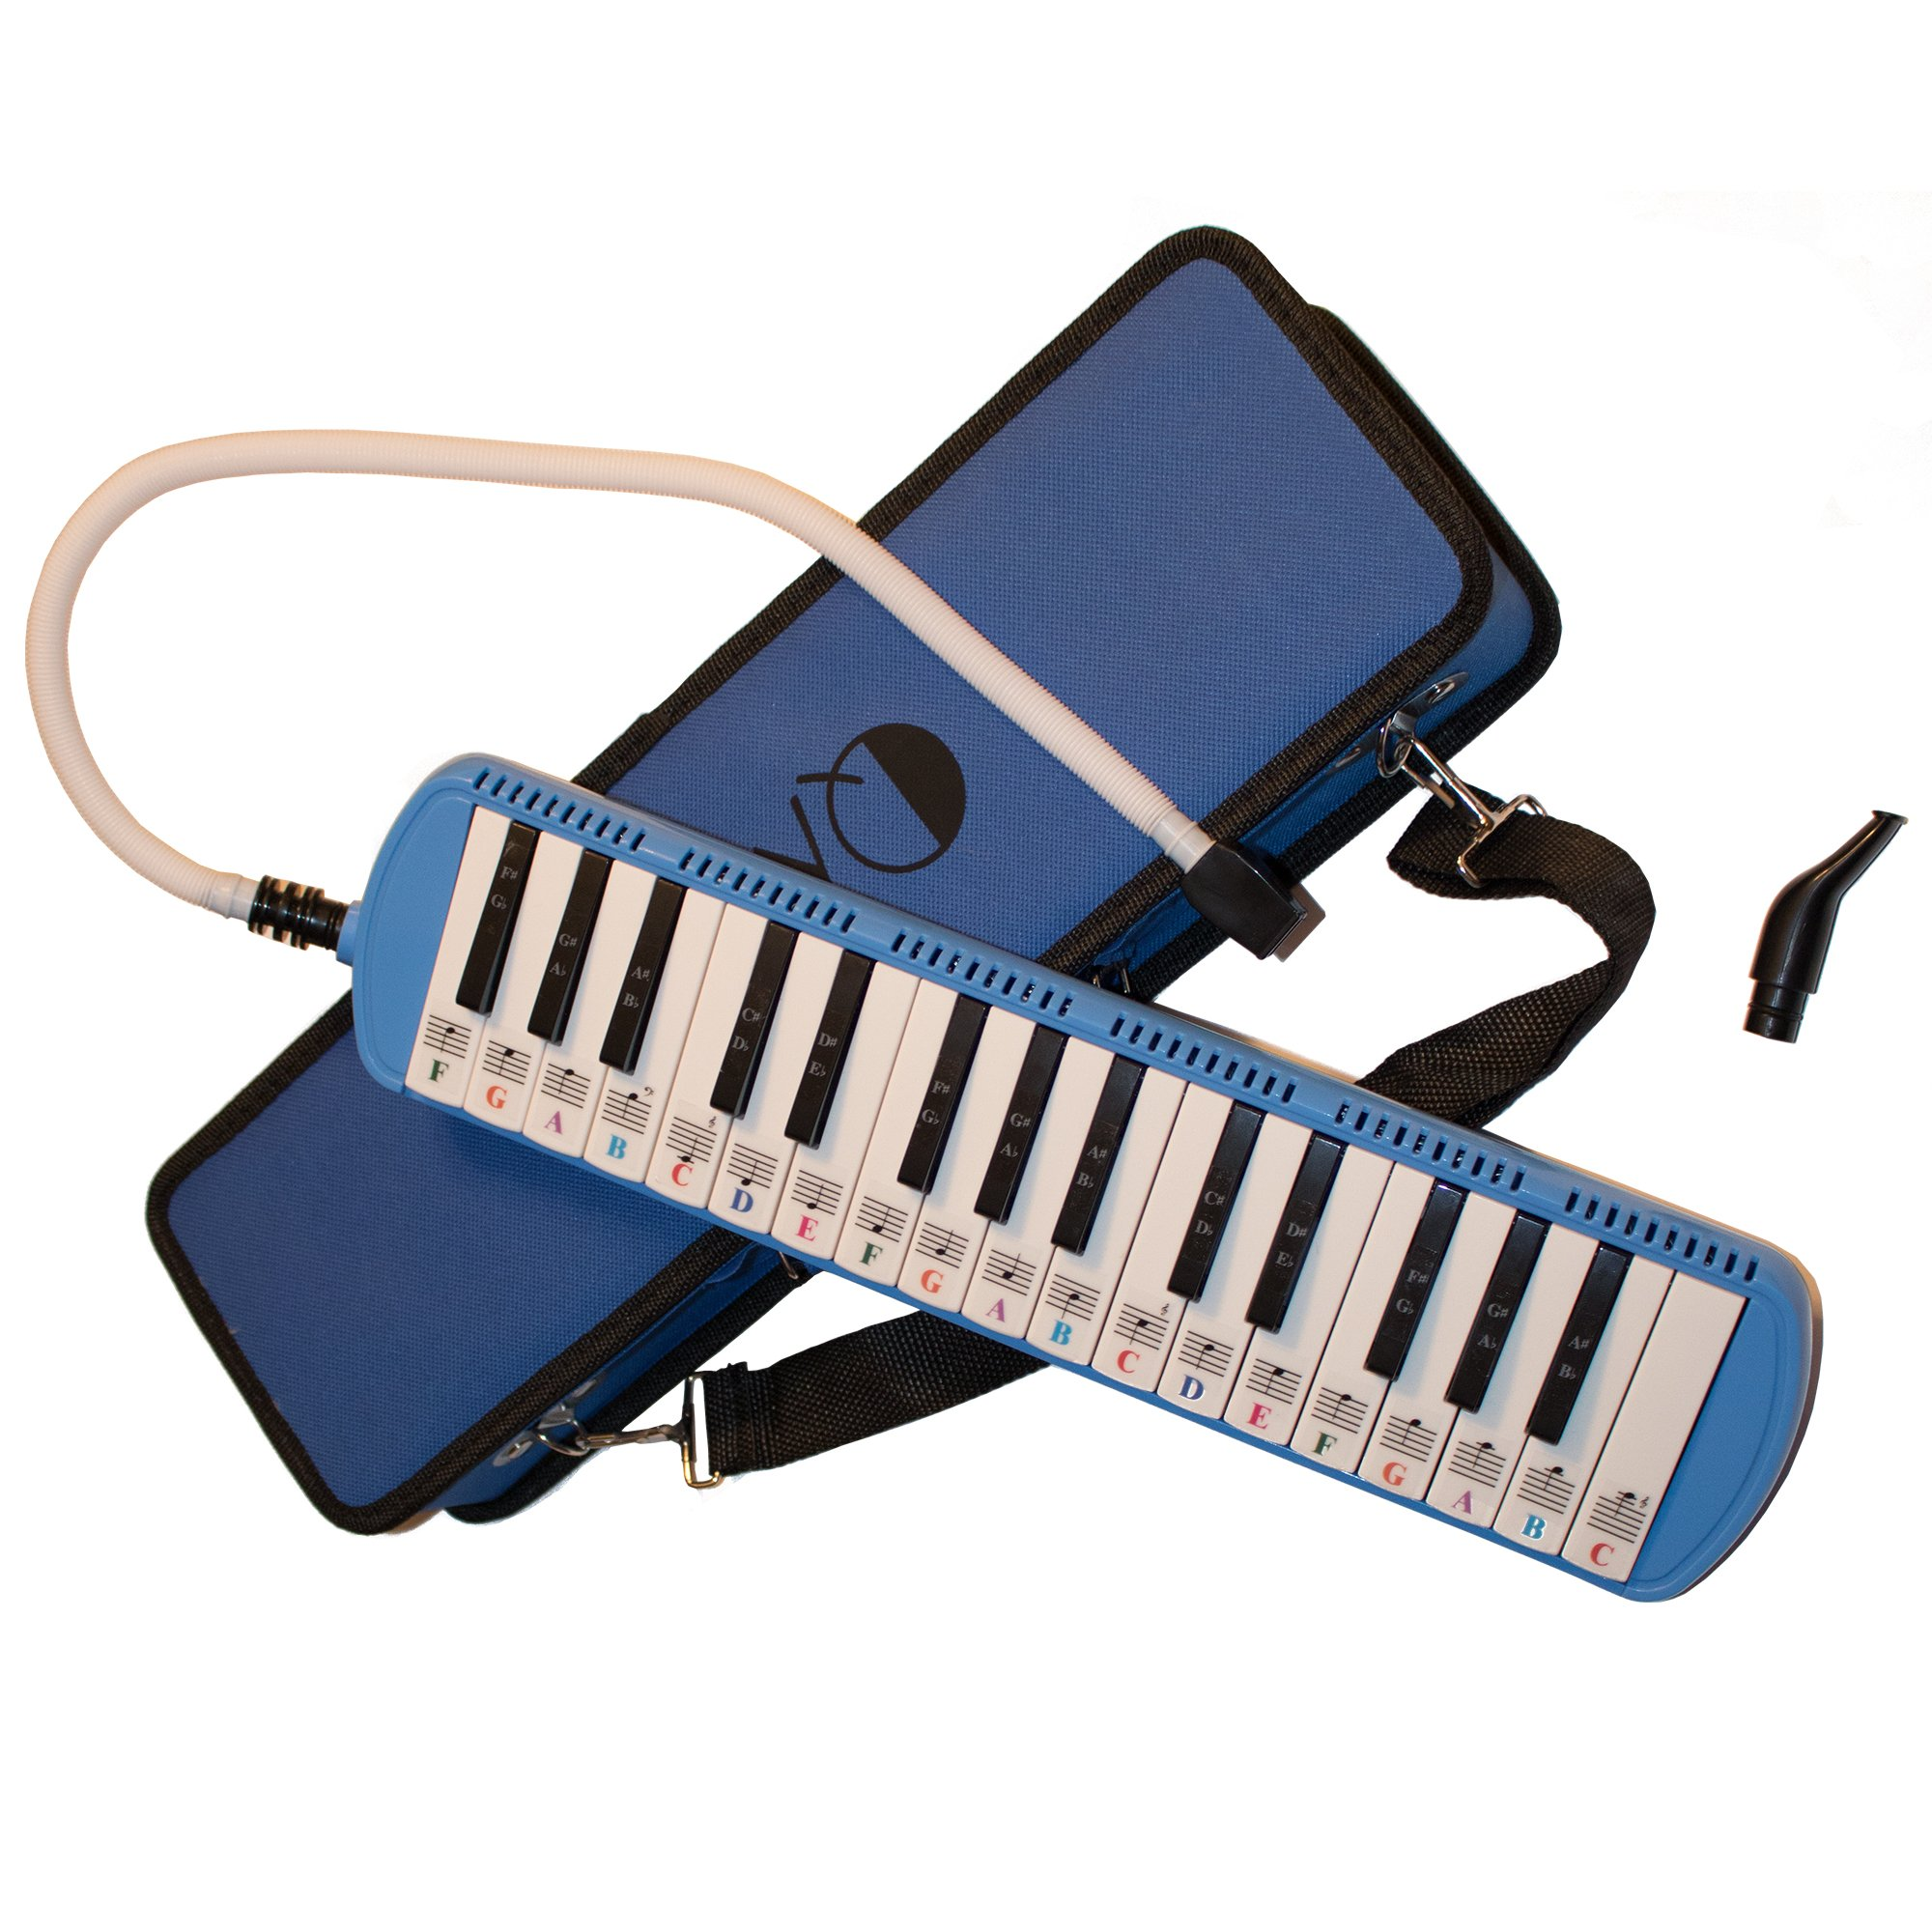 Melodica 32 Keys with Piano Stickers, Hard Cover Carrying Case, Mouthpiece, and Piano Ebook by QMG (Image #5)